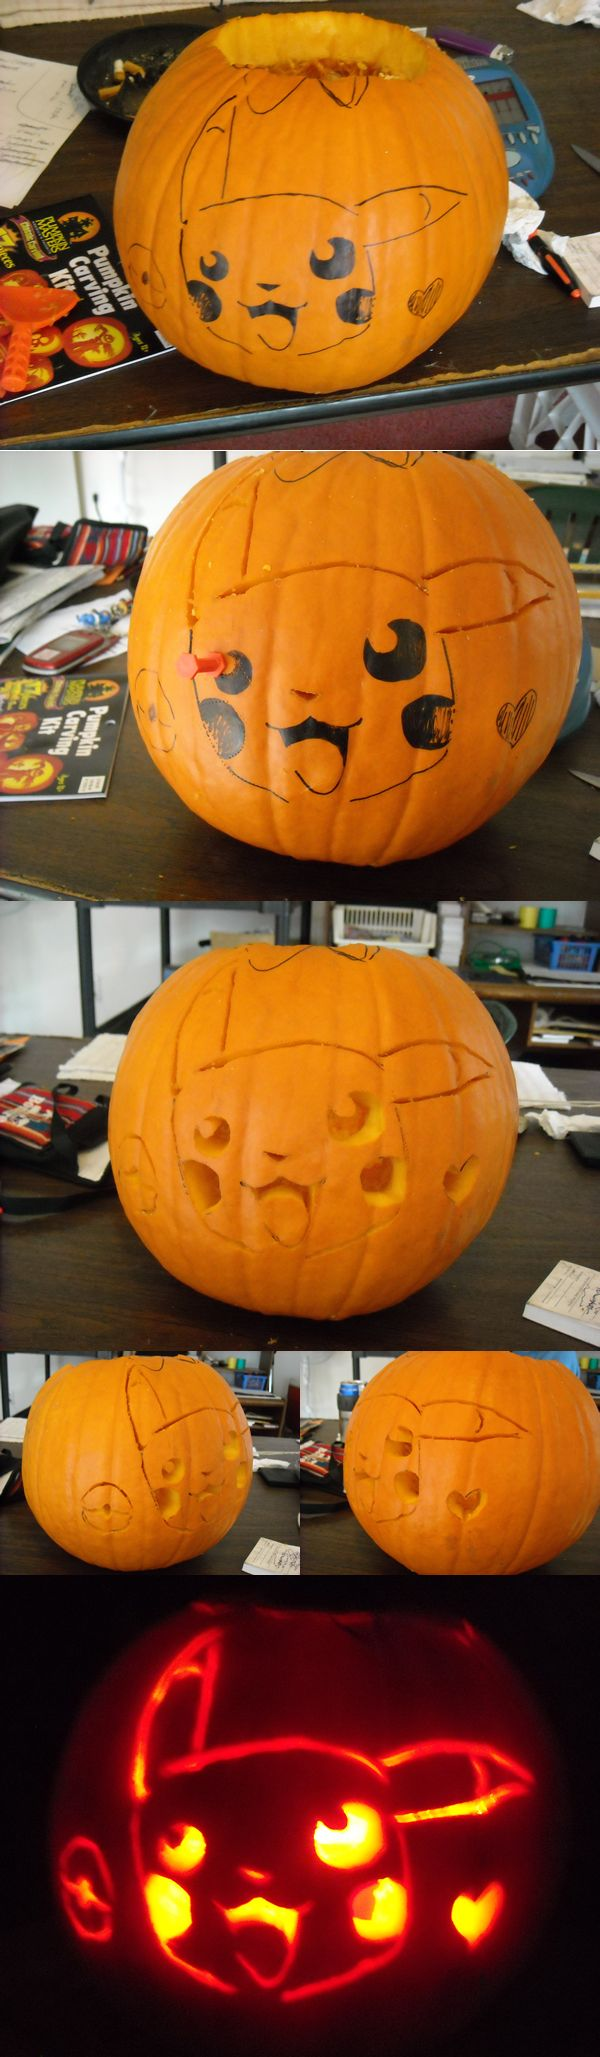 [BTW, didn't know whut to put this under...so I put Sculpt..o3o;; ] [Also, kinda a big file, sorrryyy. ; w;' ] Sooo I carved a Pikachu face on my pumpkin. It was very last minute and I co...